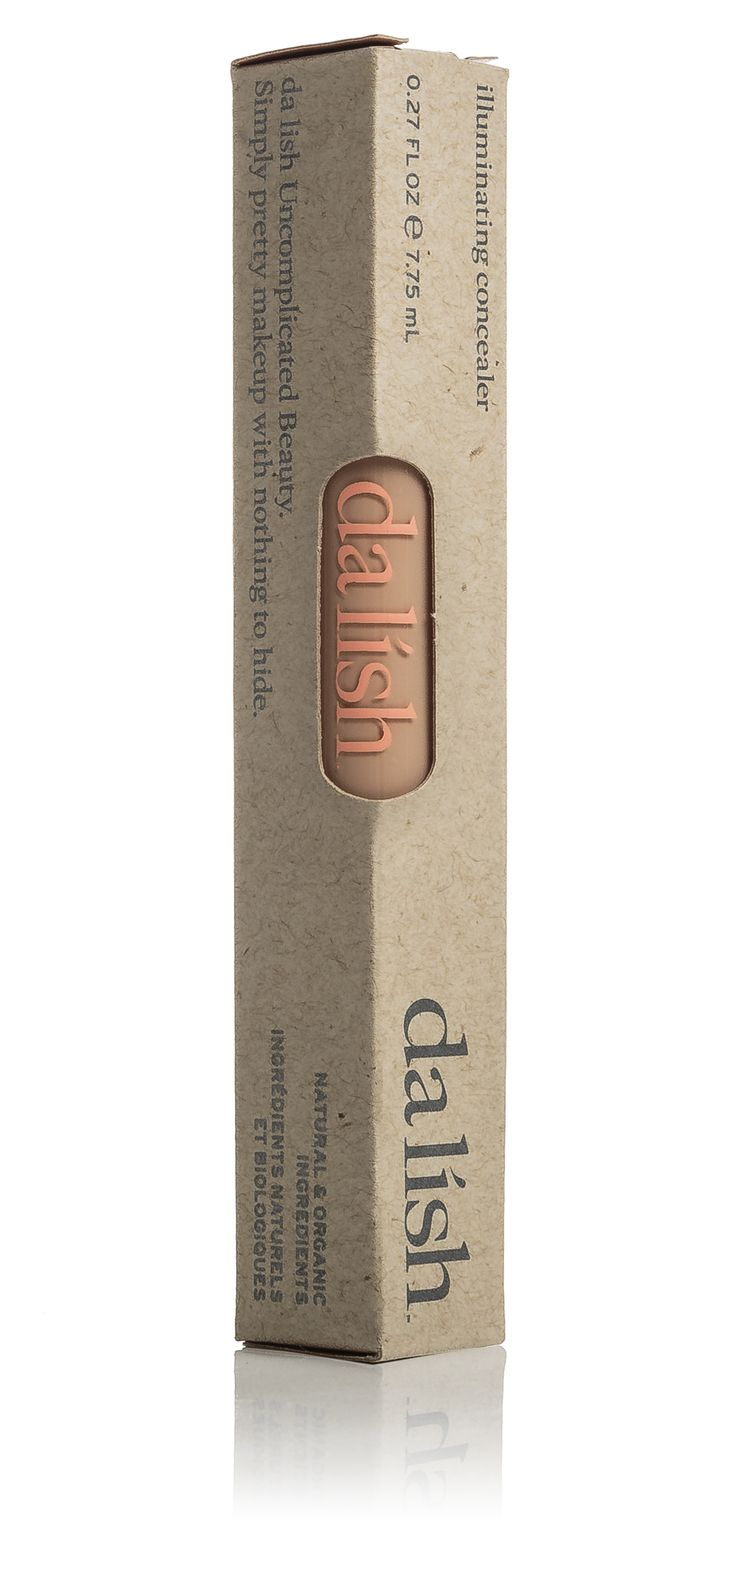 Brightening illuminators instantly wake-up under eye shadows, lift eyebrow arches and highlight cupid's bows. A rich and creamy consistency allows for buildable coverage to minimize discolouration, while corrective pigments disguise blemishes. This is CO2 shade. - See more at: http://www.dalishcosmetics.com/product/illumination-concealer-75-natural#sthash.BzQW2Xsc.dpuf